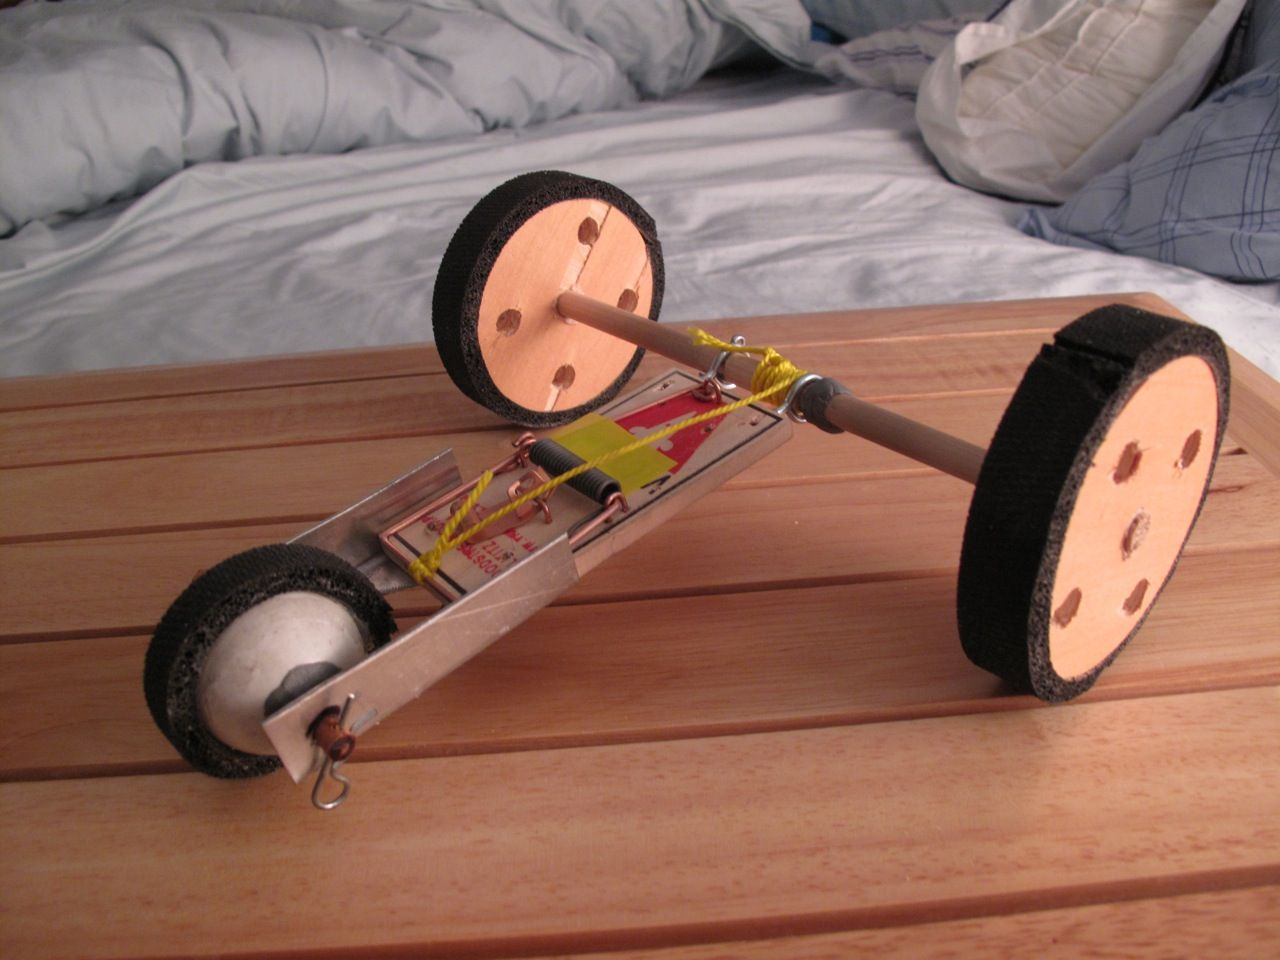 mouse trap car designs cool mouse trap car designs kids crafts victor mousetrap car speed racer crafts diy projects